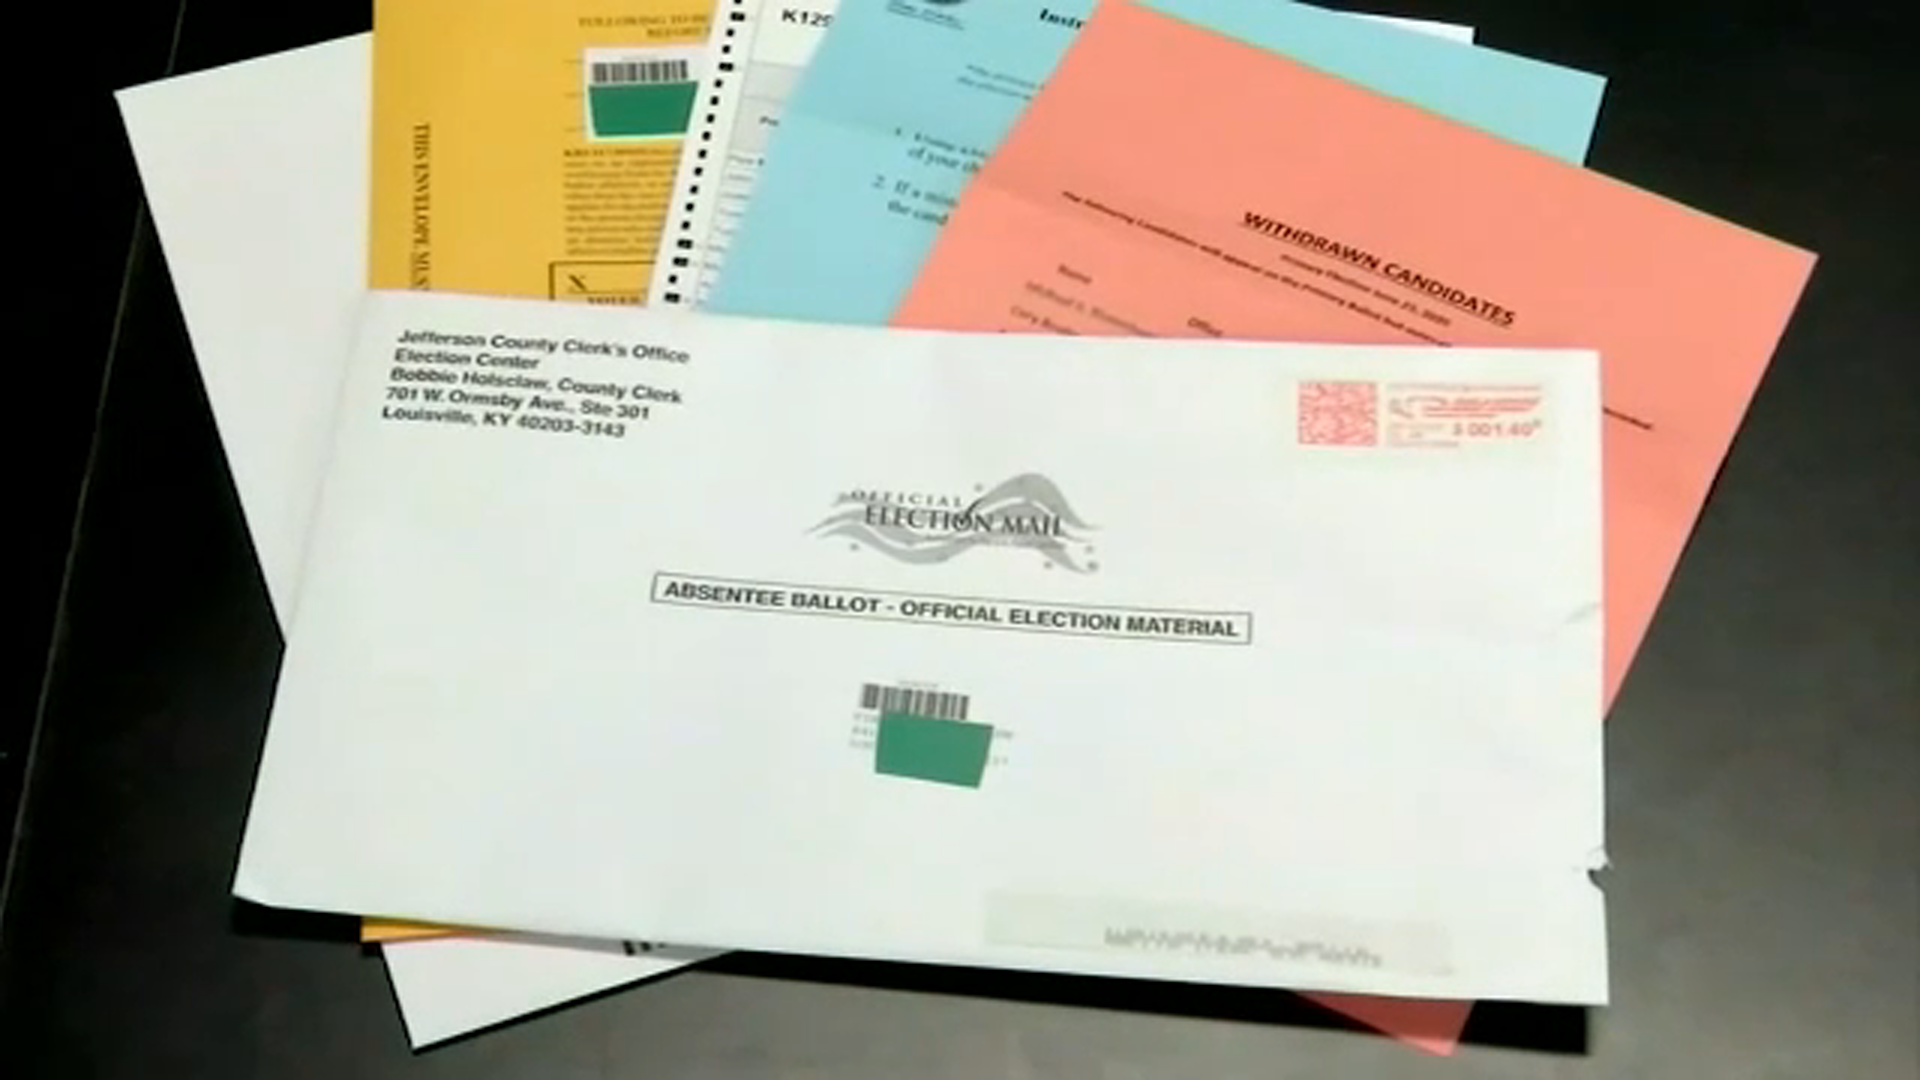 6380473 082020 wabc votebymail img - How To Get An Absentee Ballot In Westchester Ny